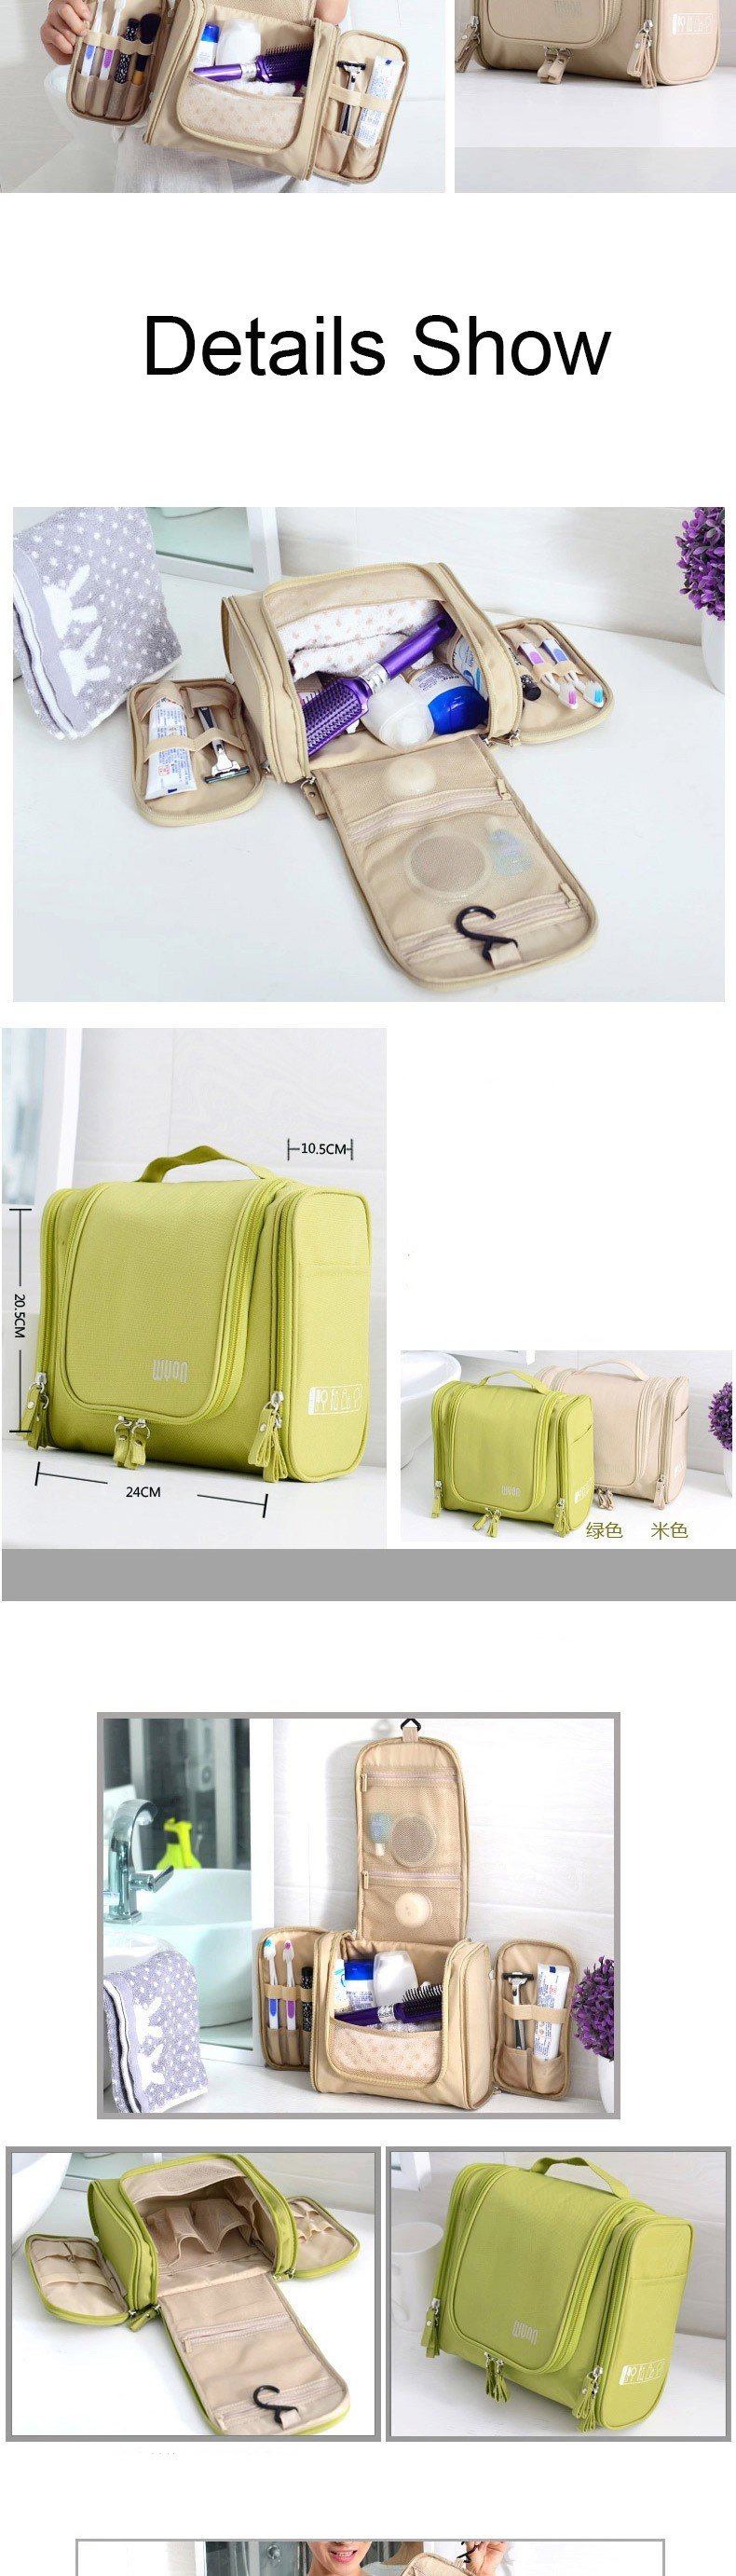 travel organizer (3)